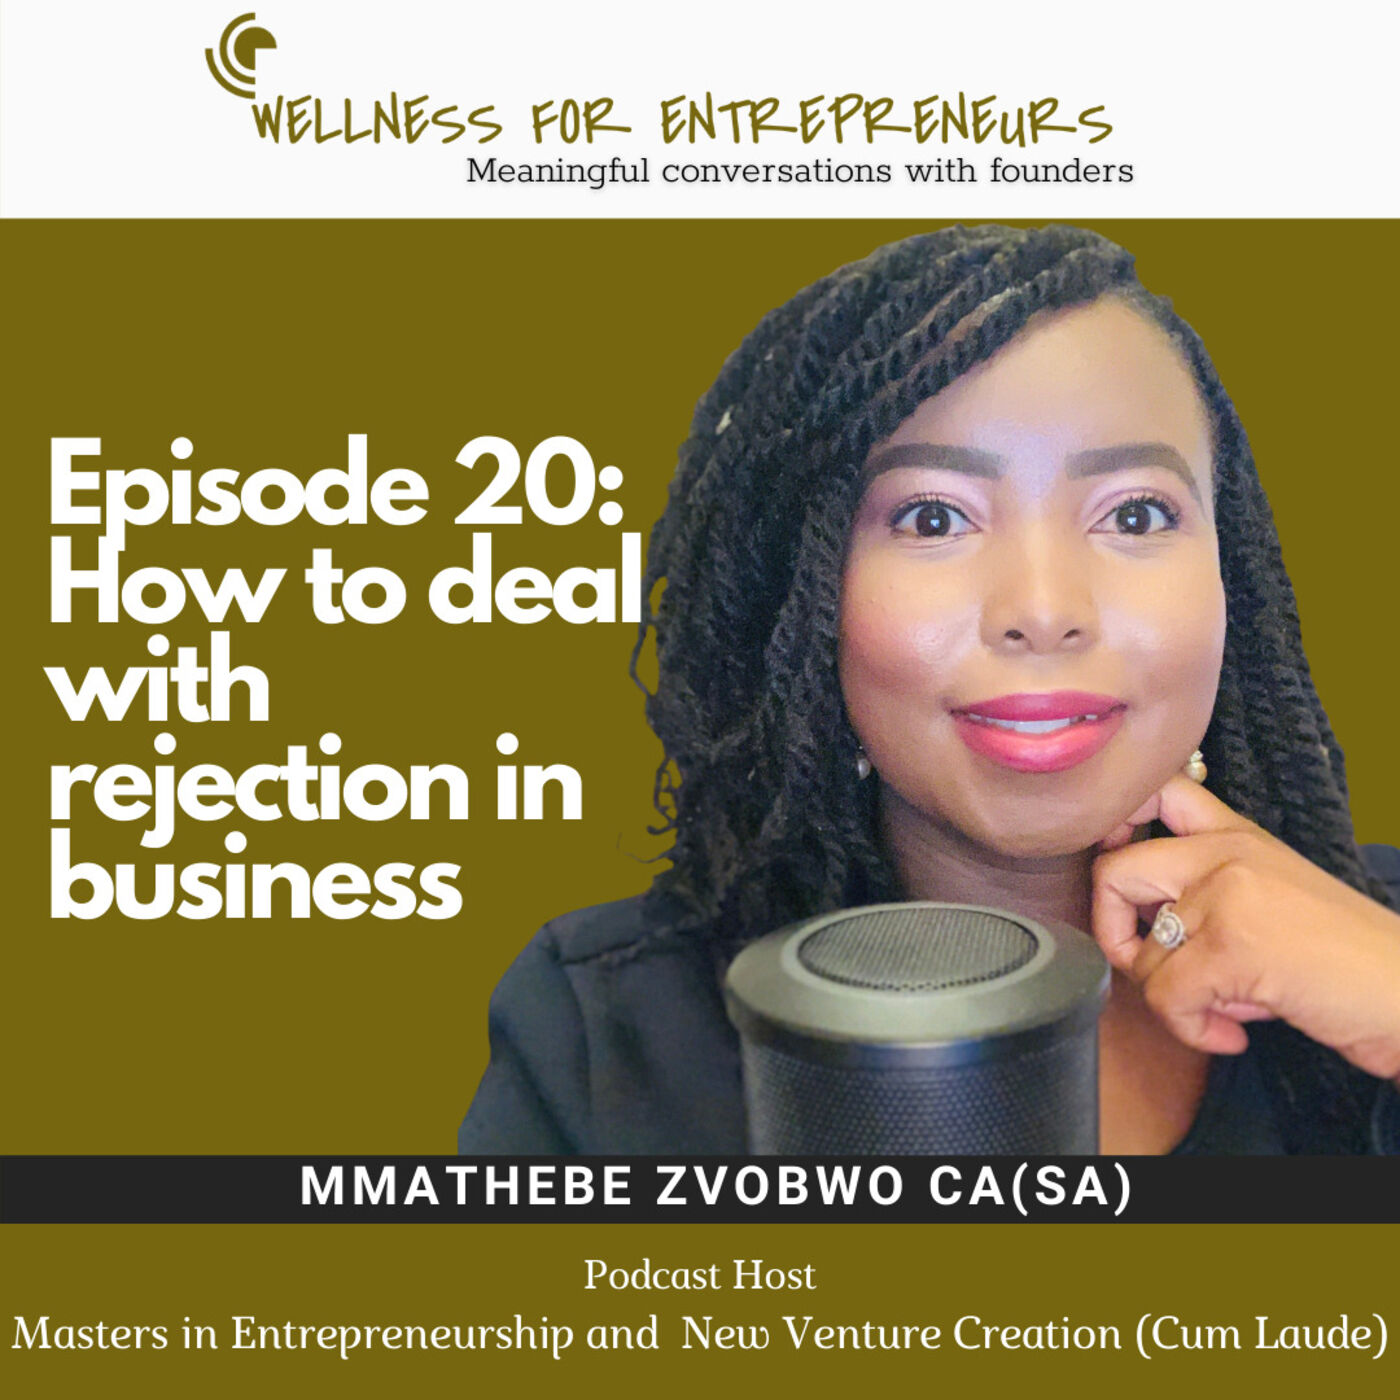 Episode 20: How to deal with rejection in business